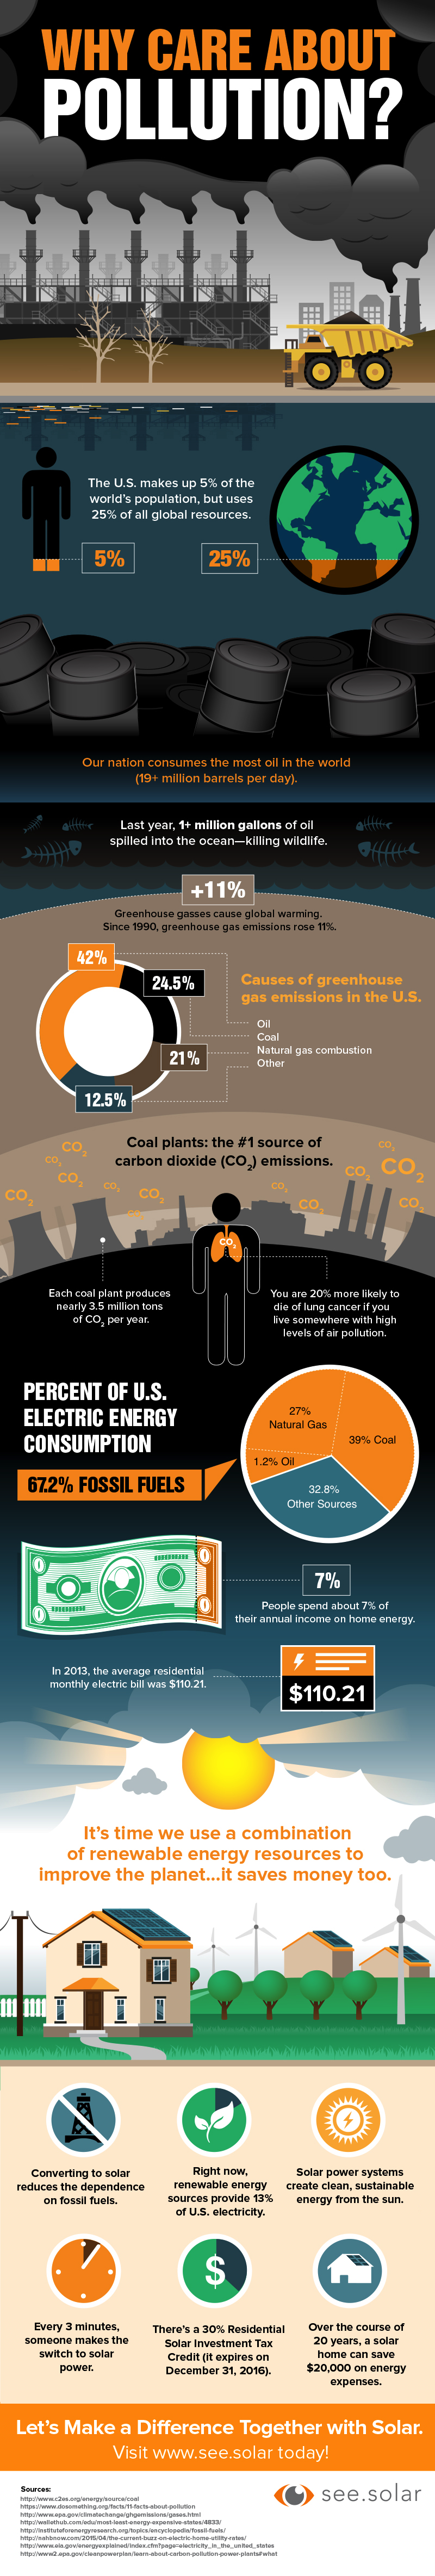 Why Care About Pollution?